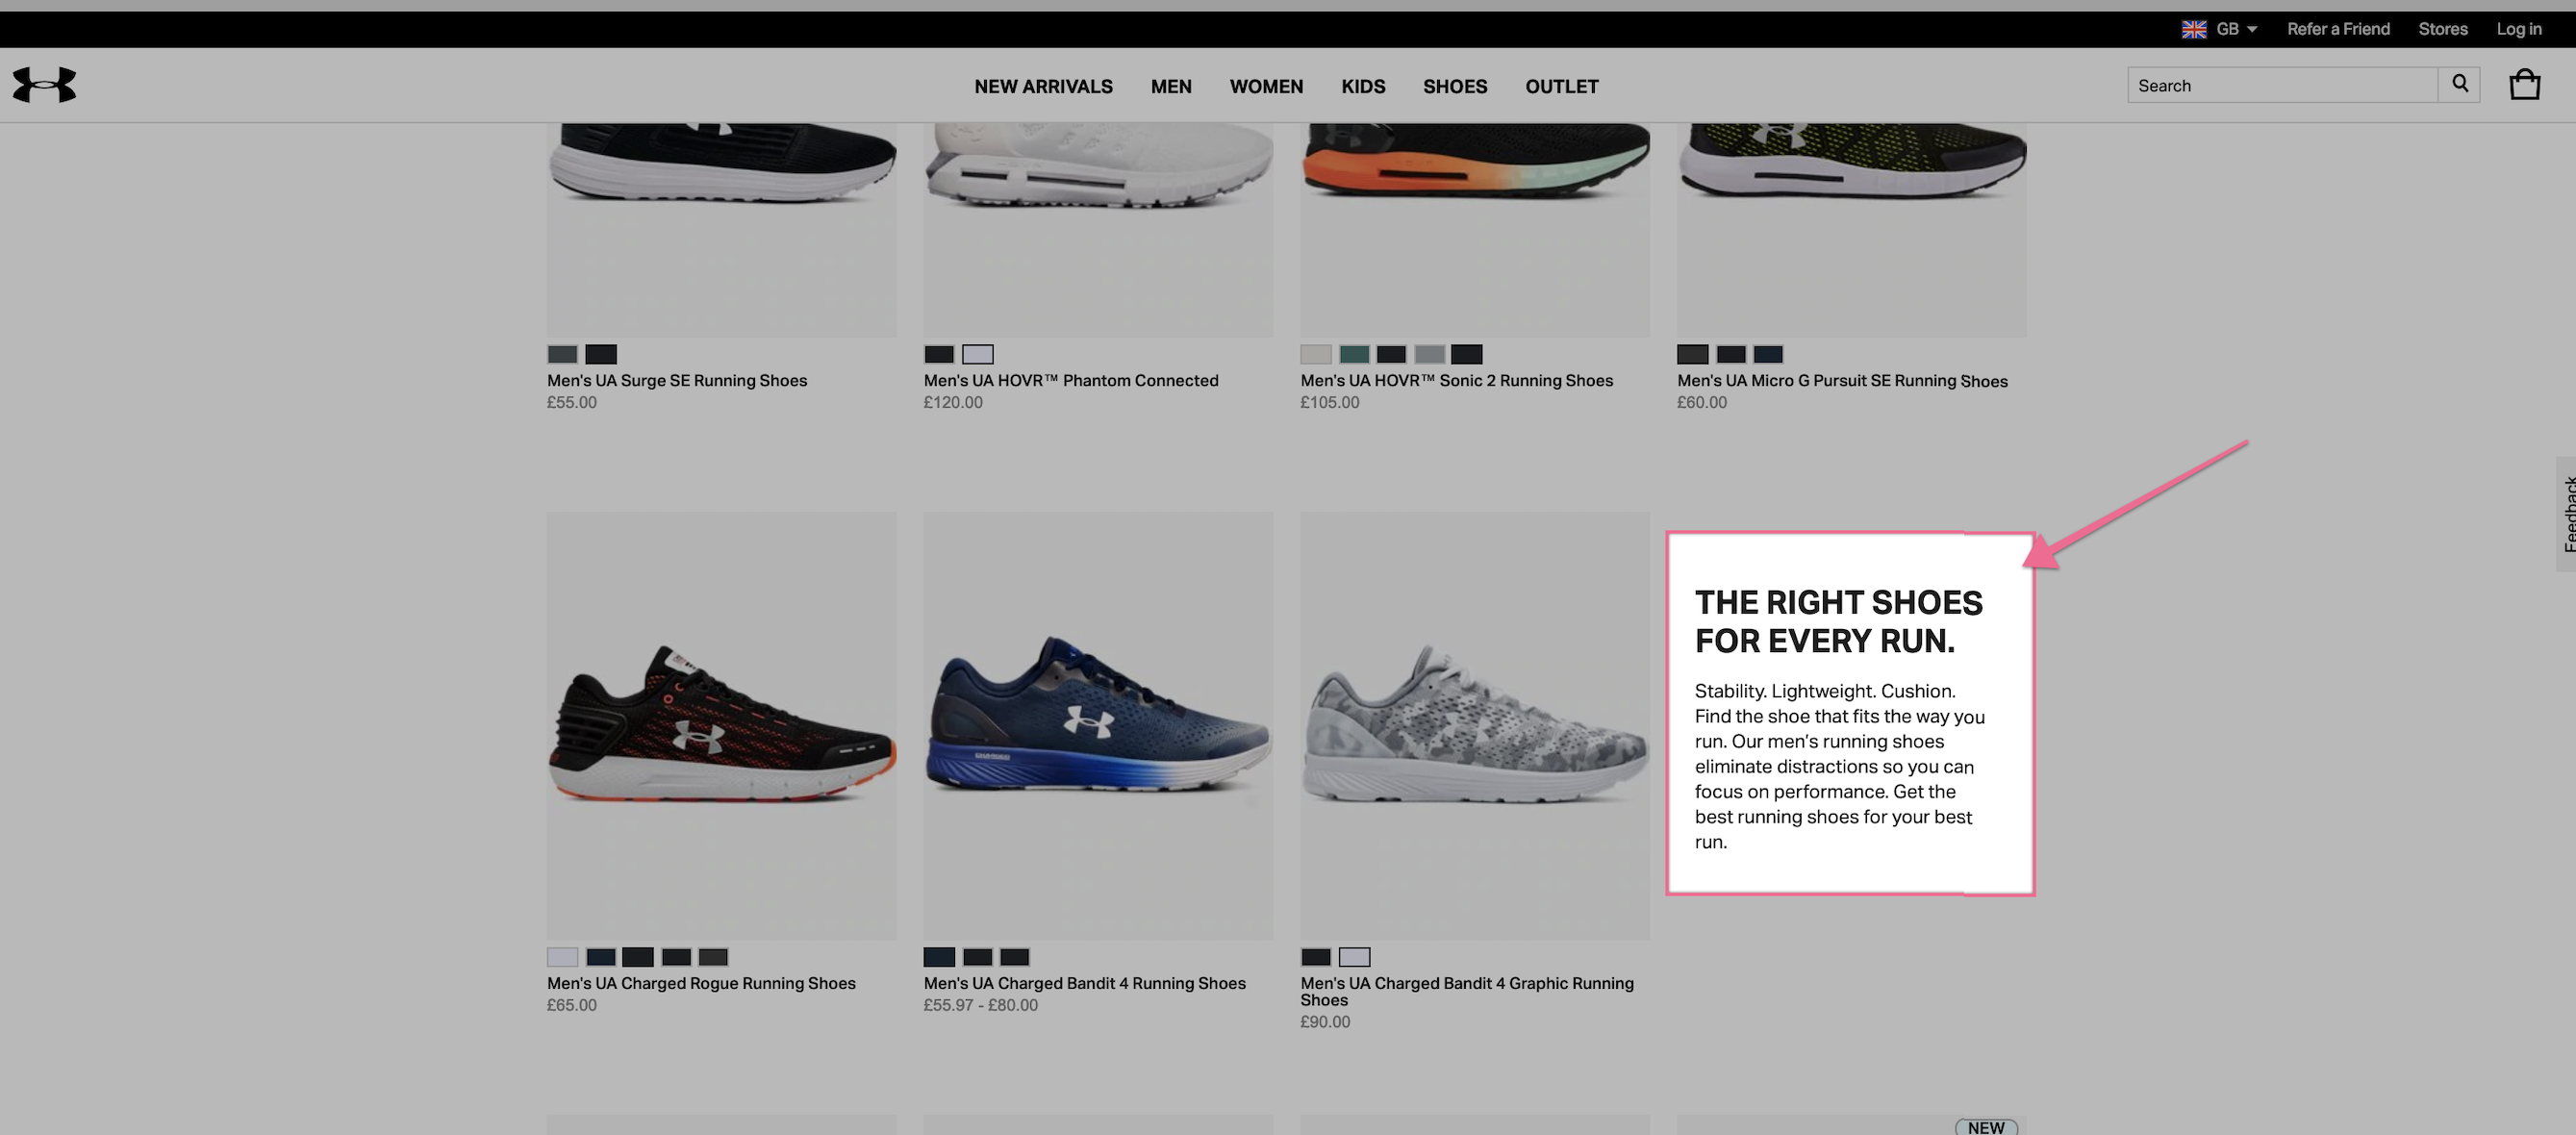 Nike.com content & informational CTA embedded on a category page